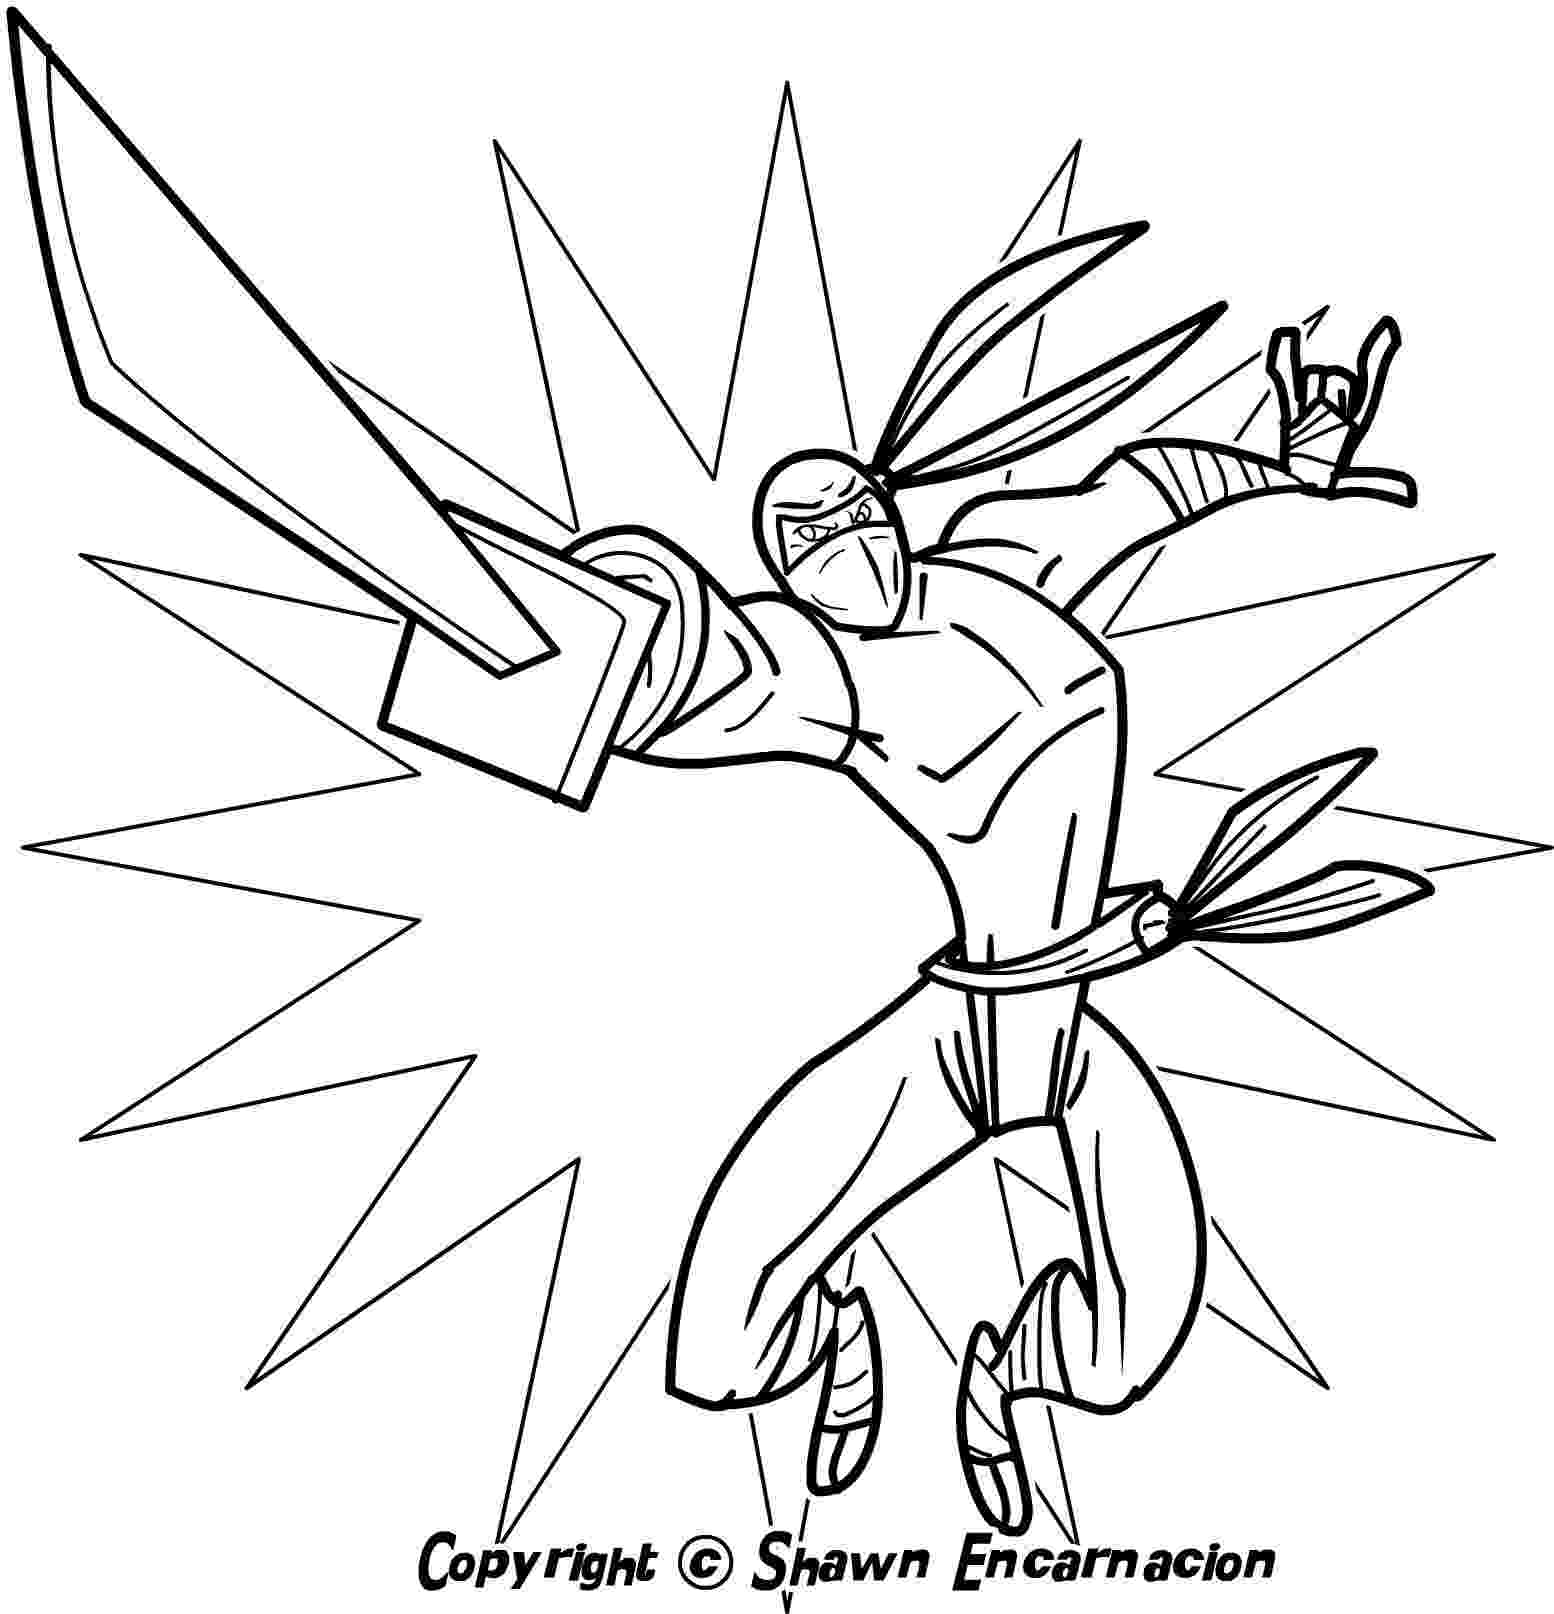 coloring pages ninja coloring ninja pages coloring ninja